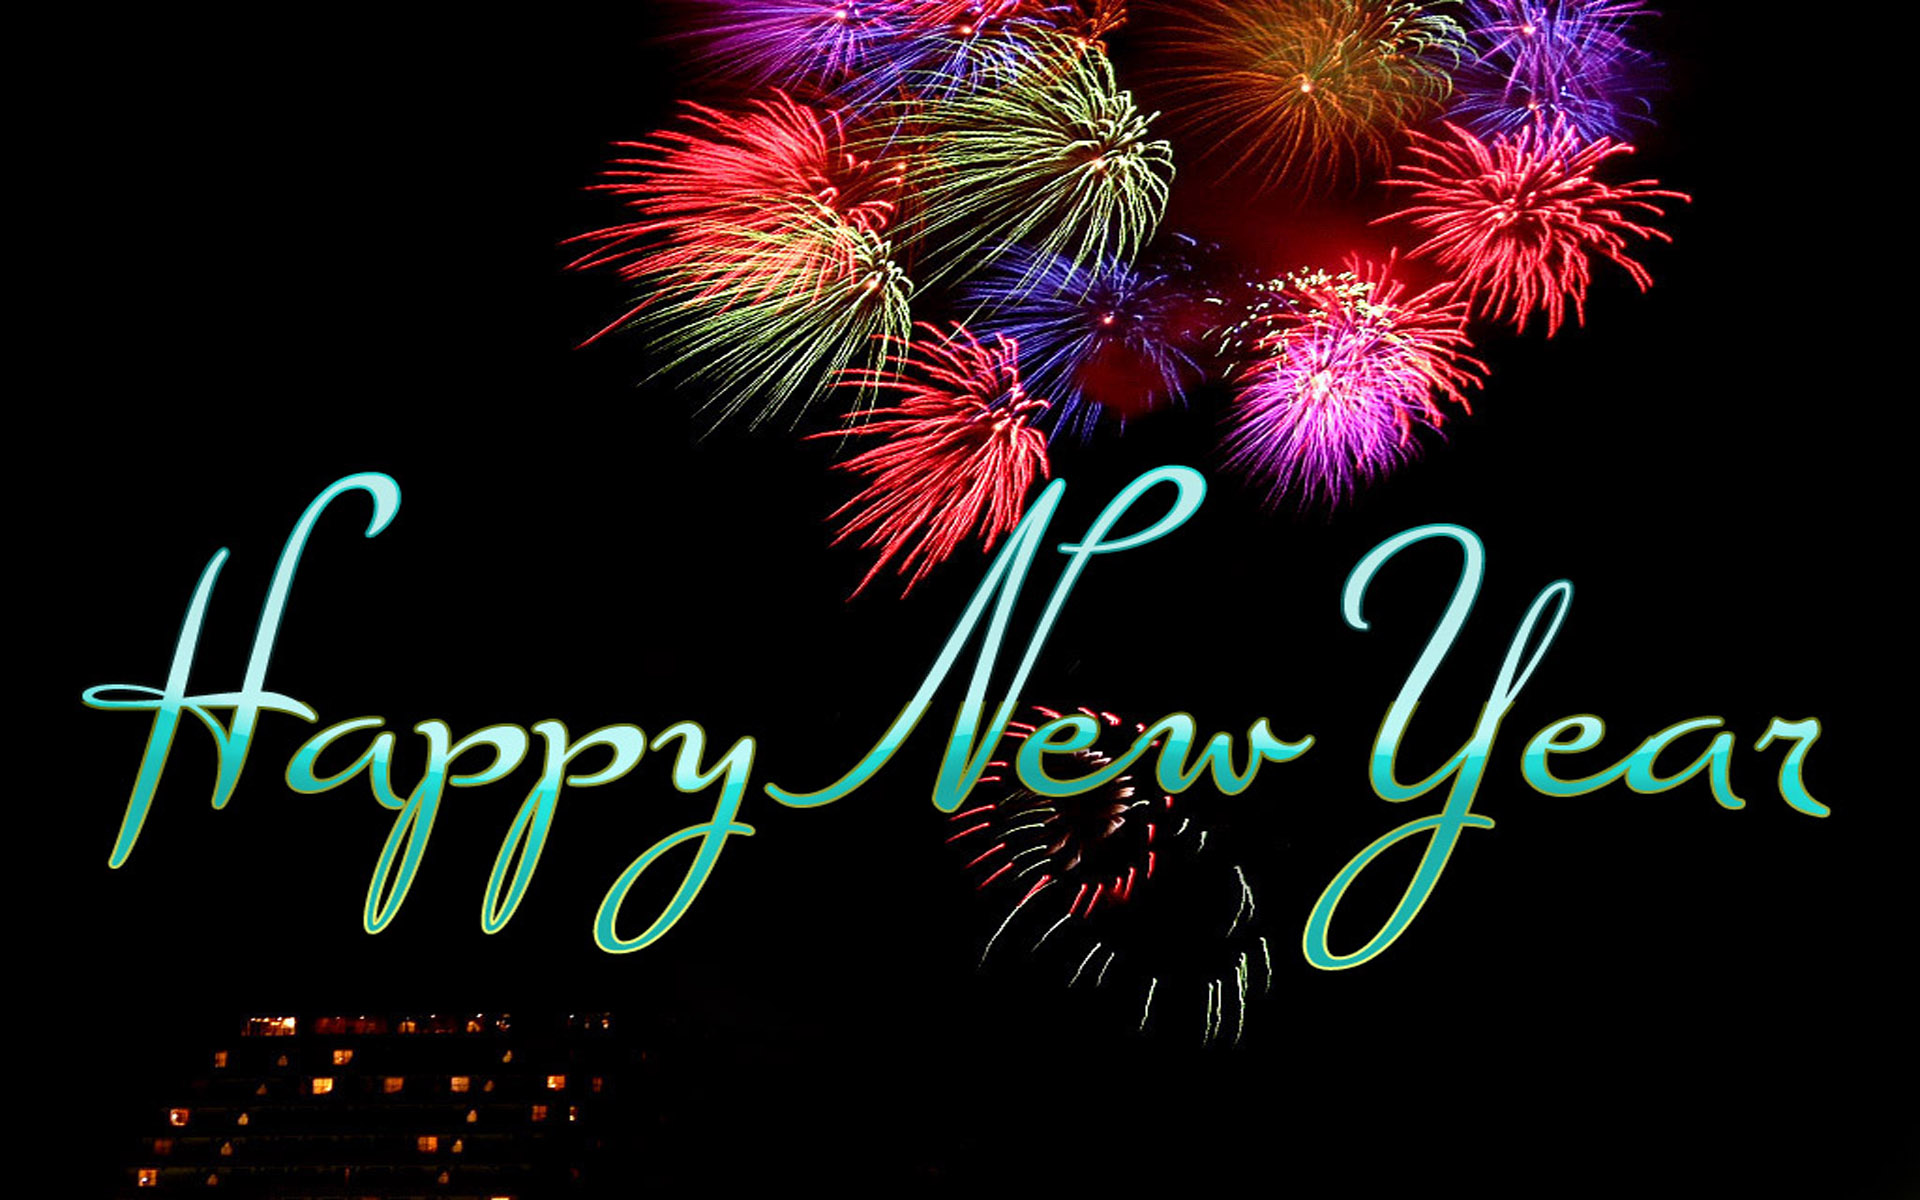 happy-new-year-hd-wallpapers